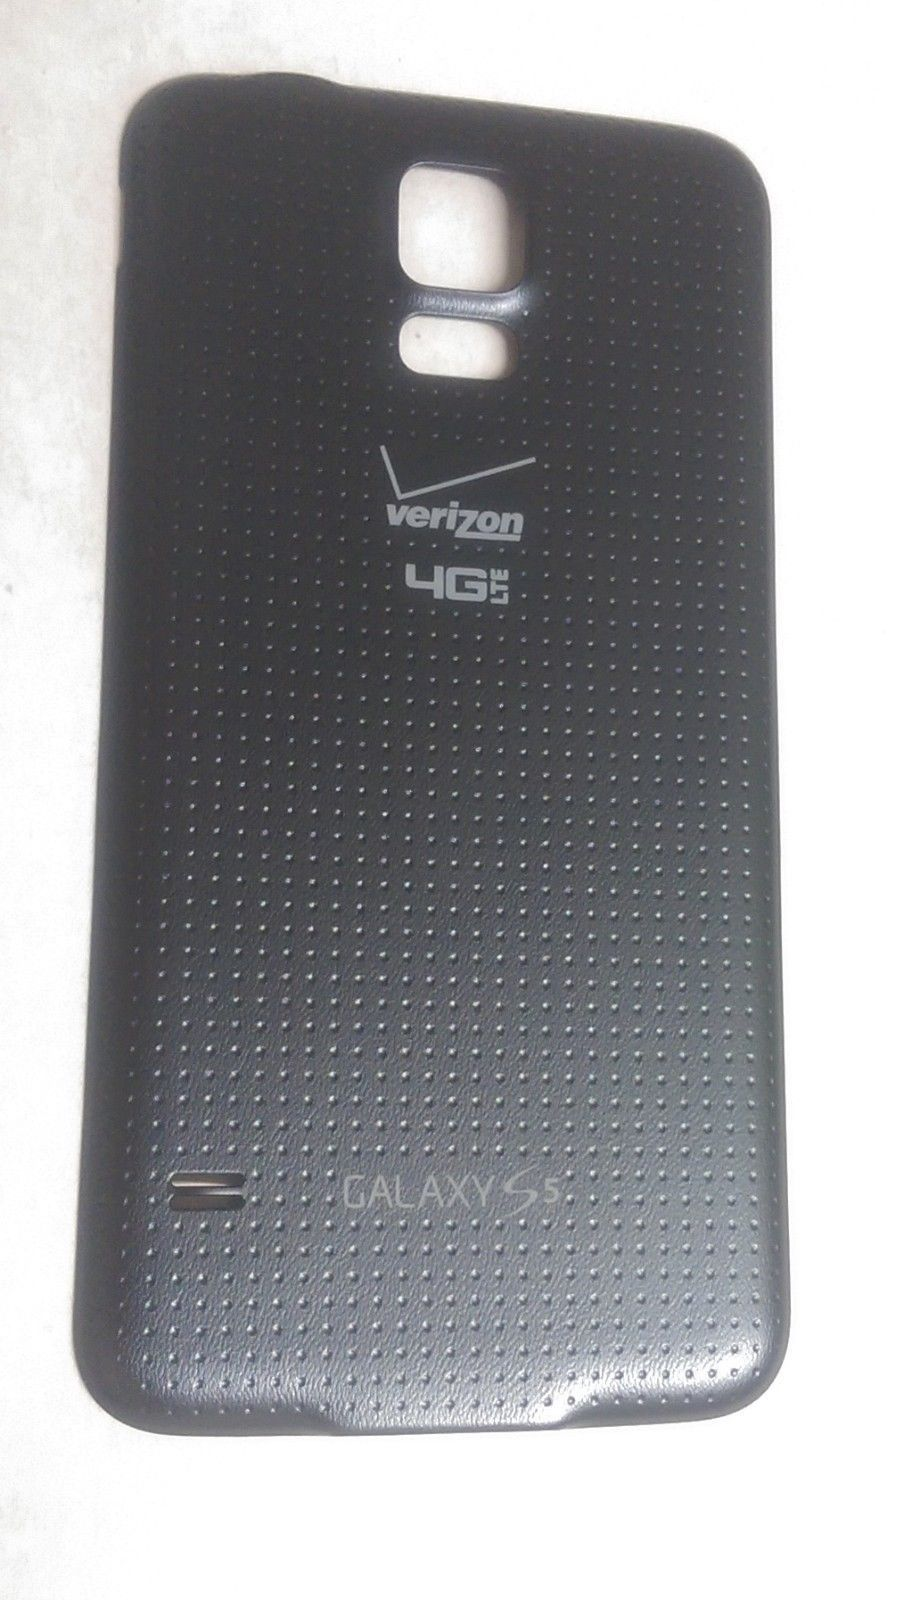 Primary image for OEM Samsung Galaxy S5 G900V Battery Door Back Cover - Charcoal Black - Verizon